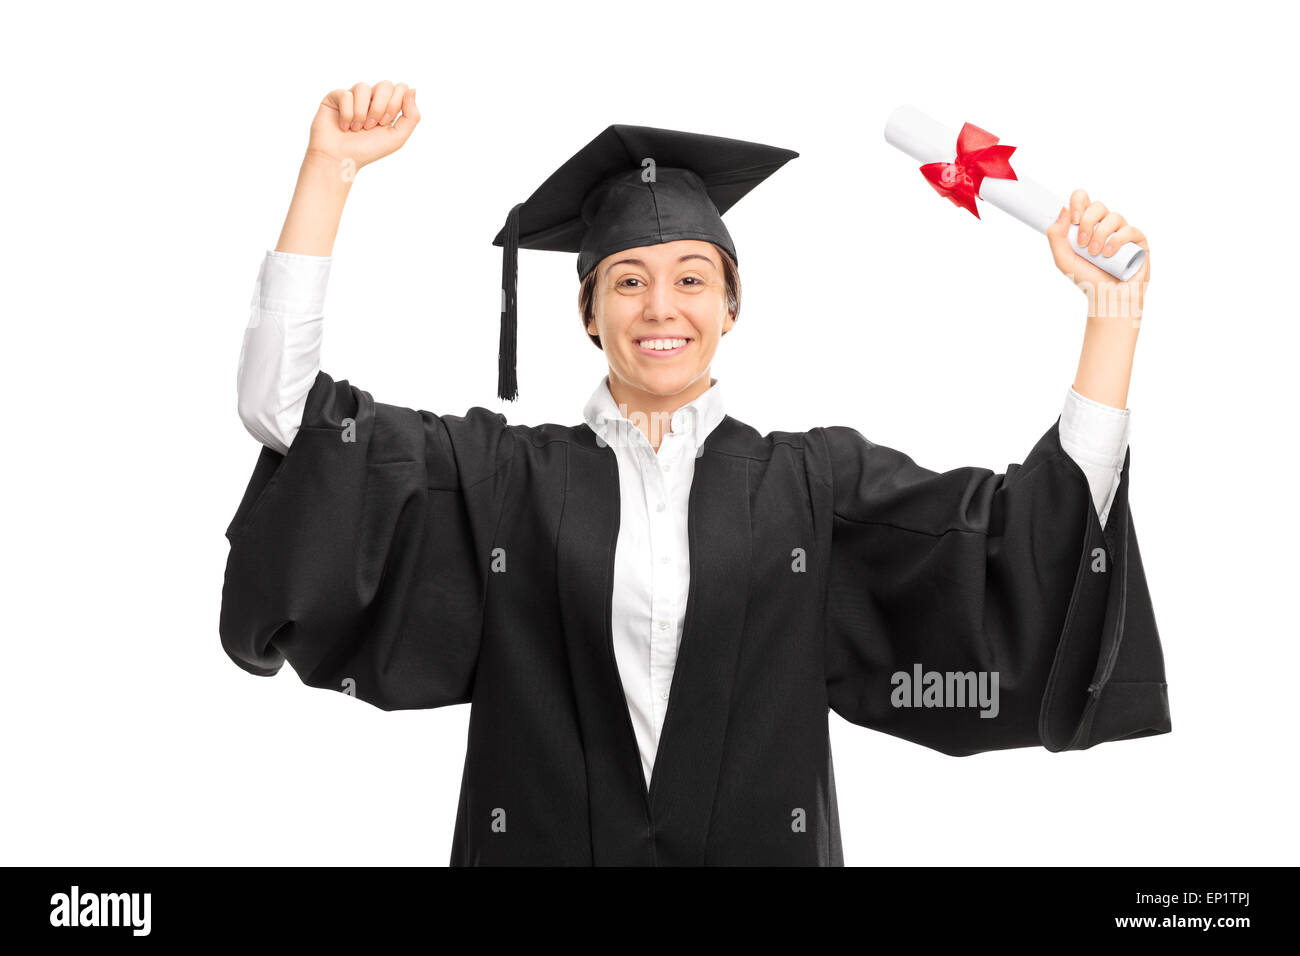 Joyful female graduate student in black gown holding a diploma and ...